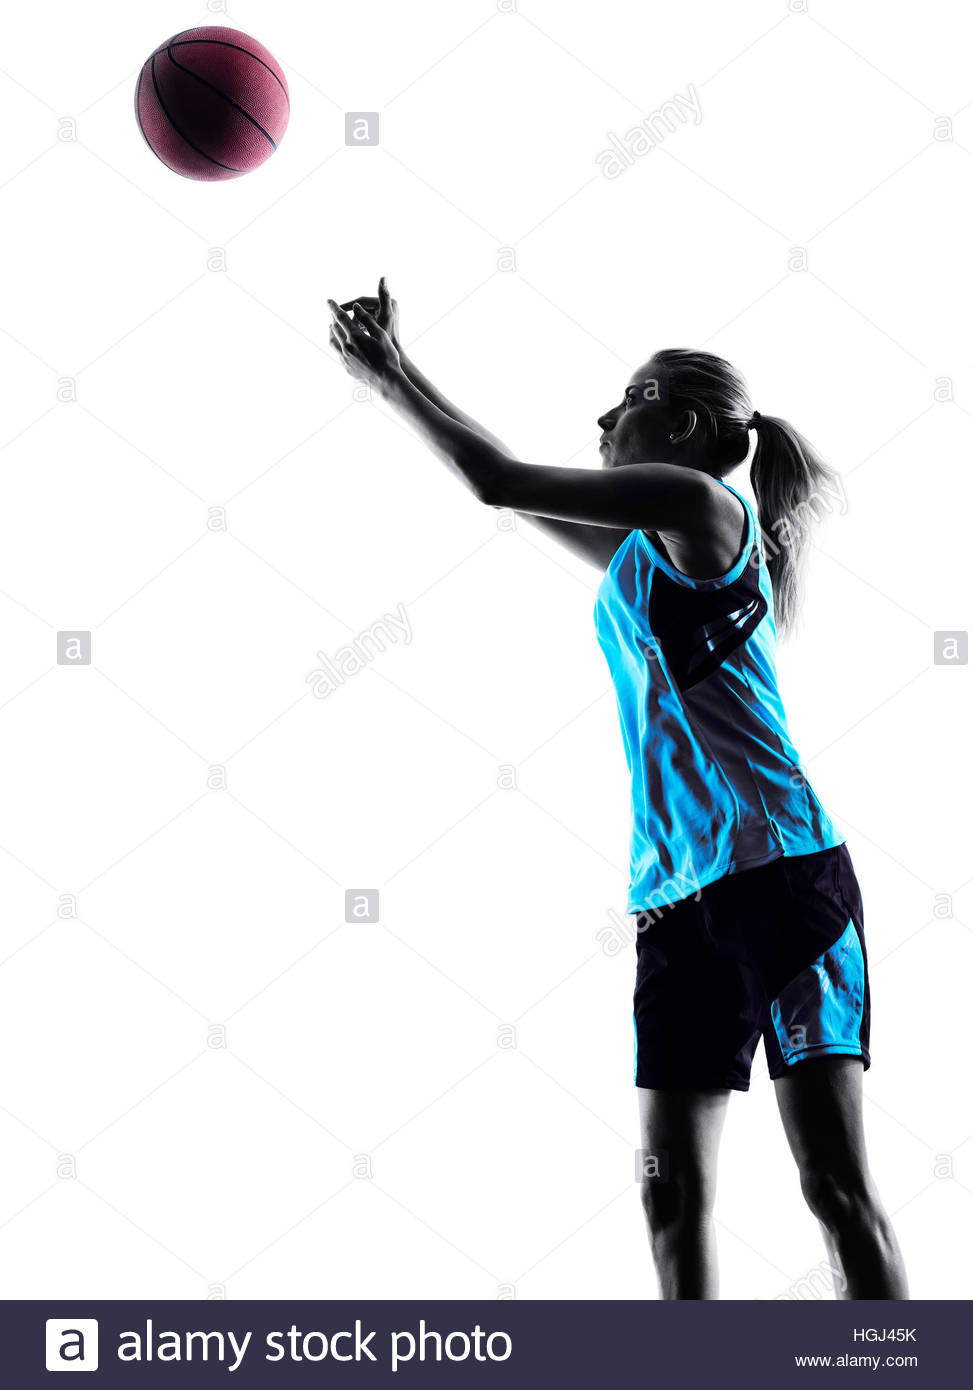 973x1390 One Caucasian Woman Basketball Player Dribbling In Silhouette